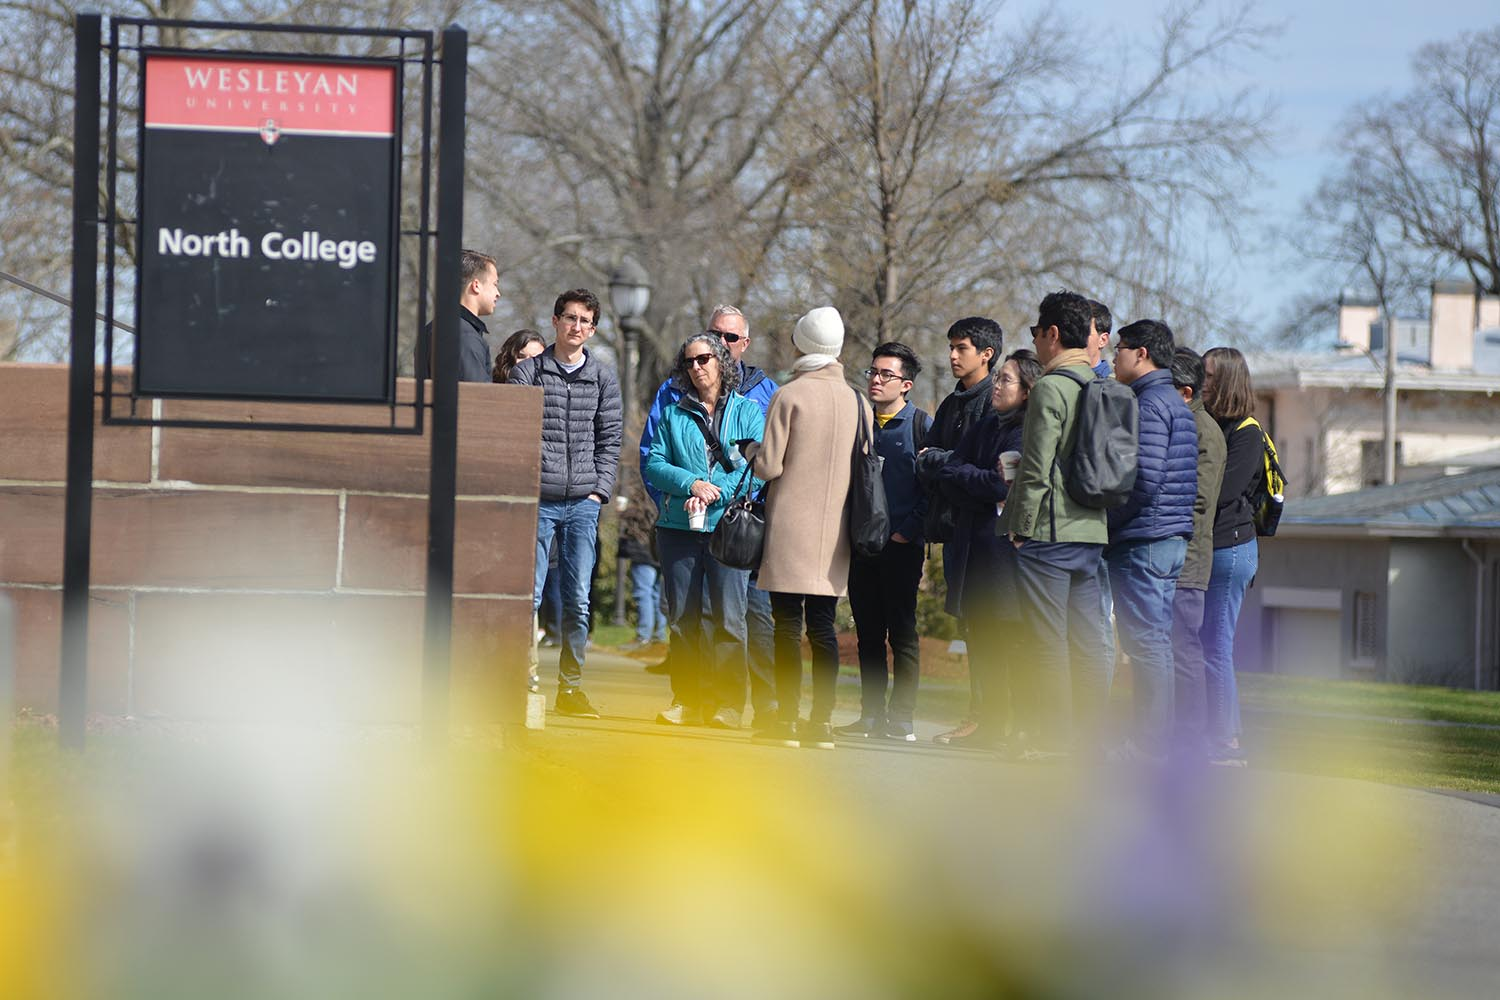 Students led campus tours throughout WesFest.